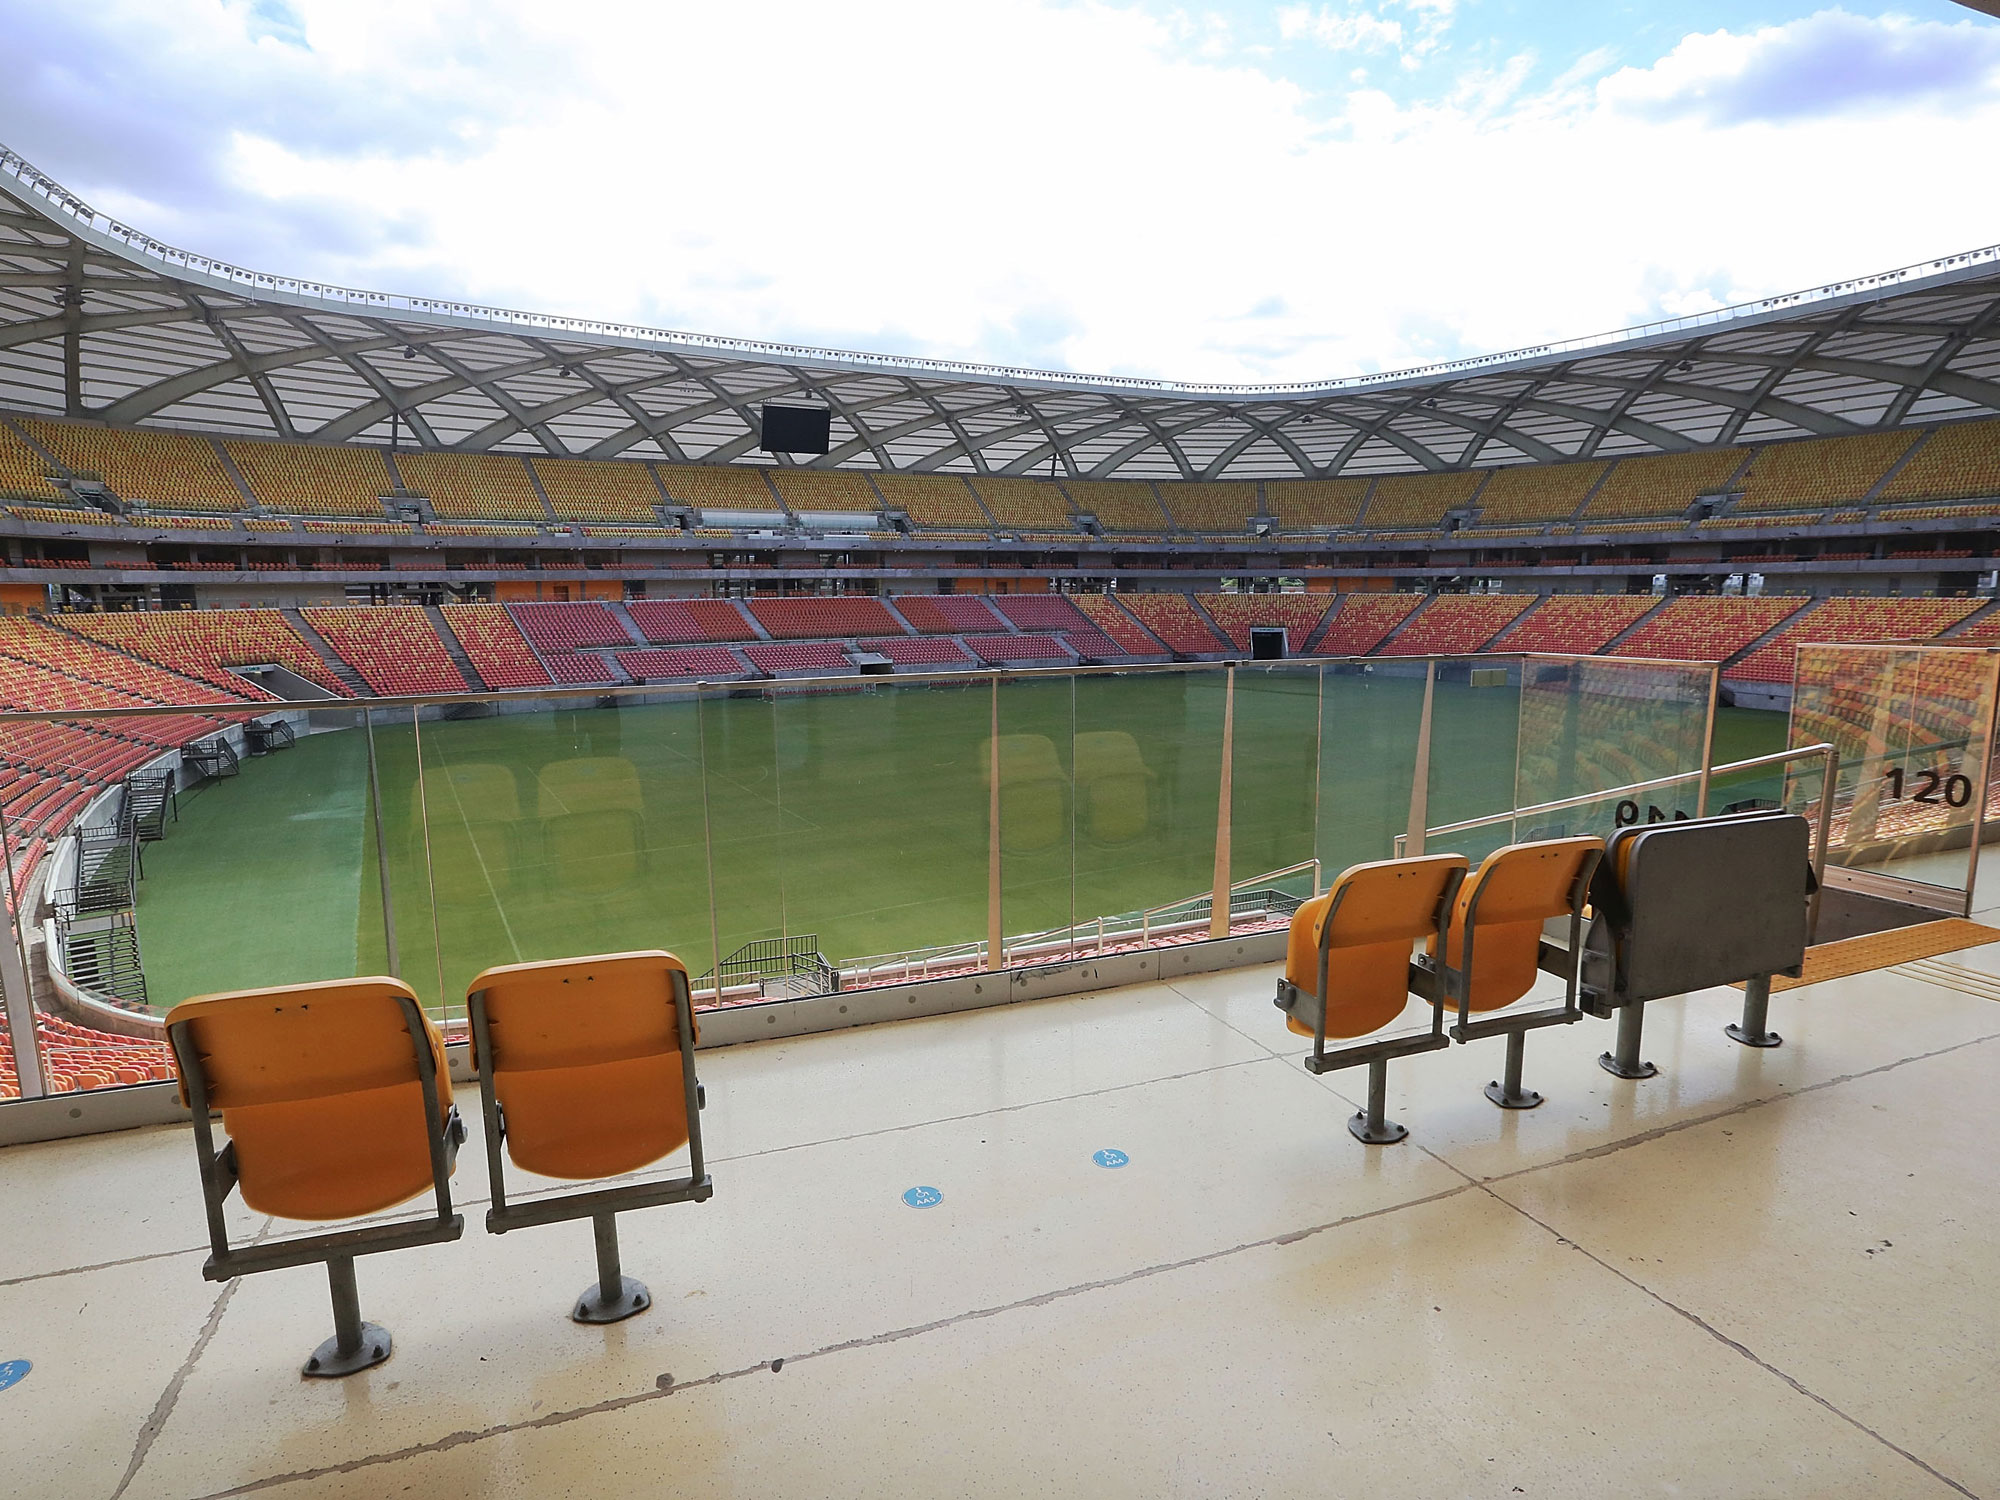 Arena Amazonia in Manaus goes mostly unused